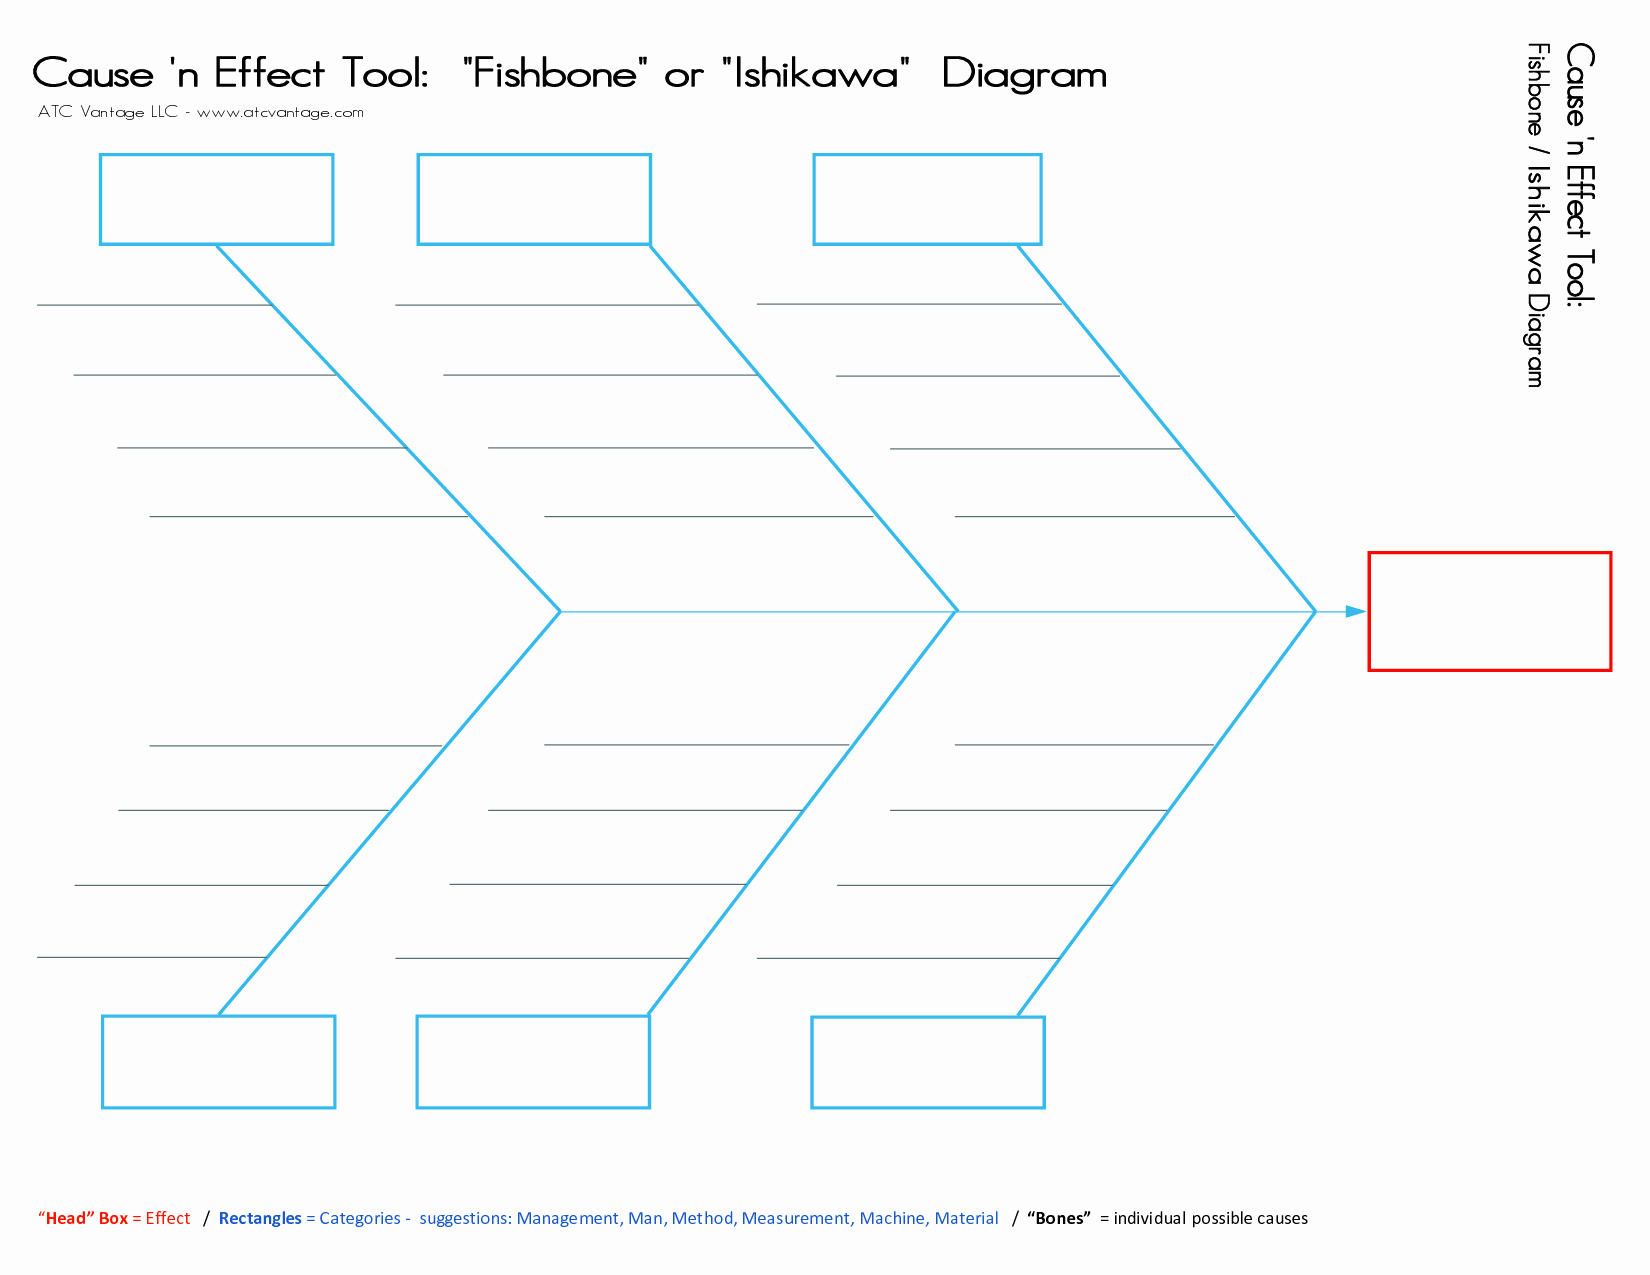 Free Fishbone Diagram Template Word Inspirational Fishbone Diagram Template